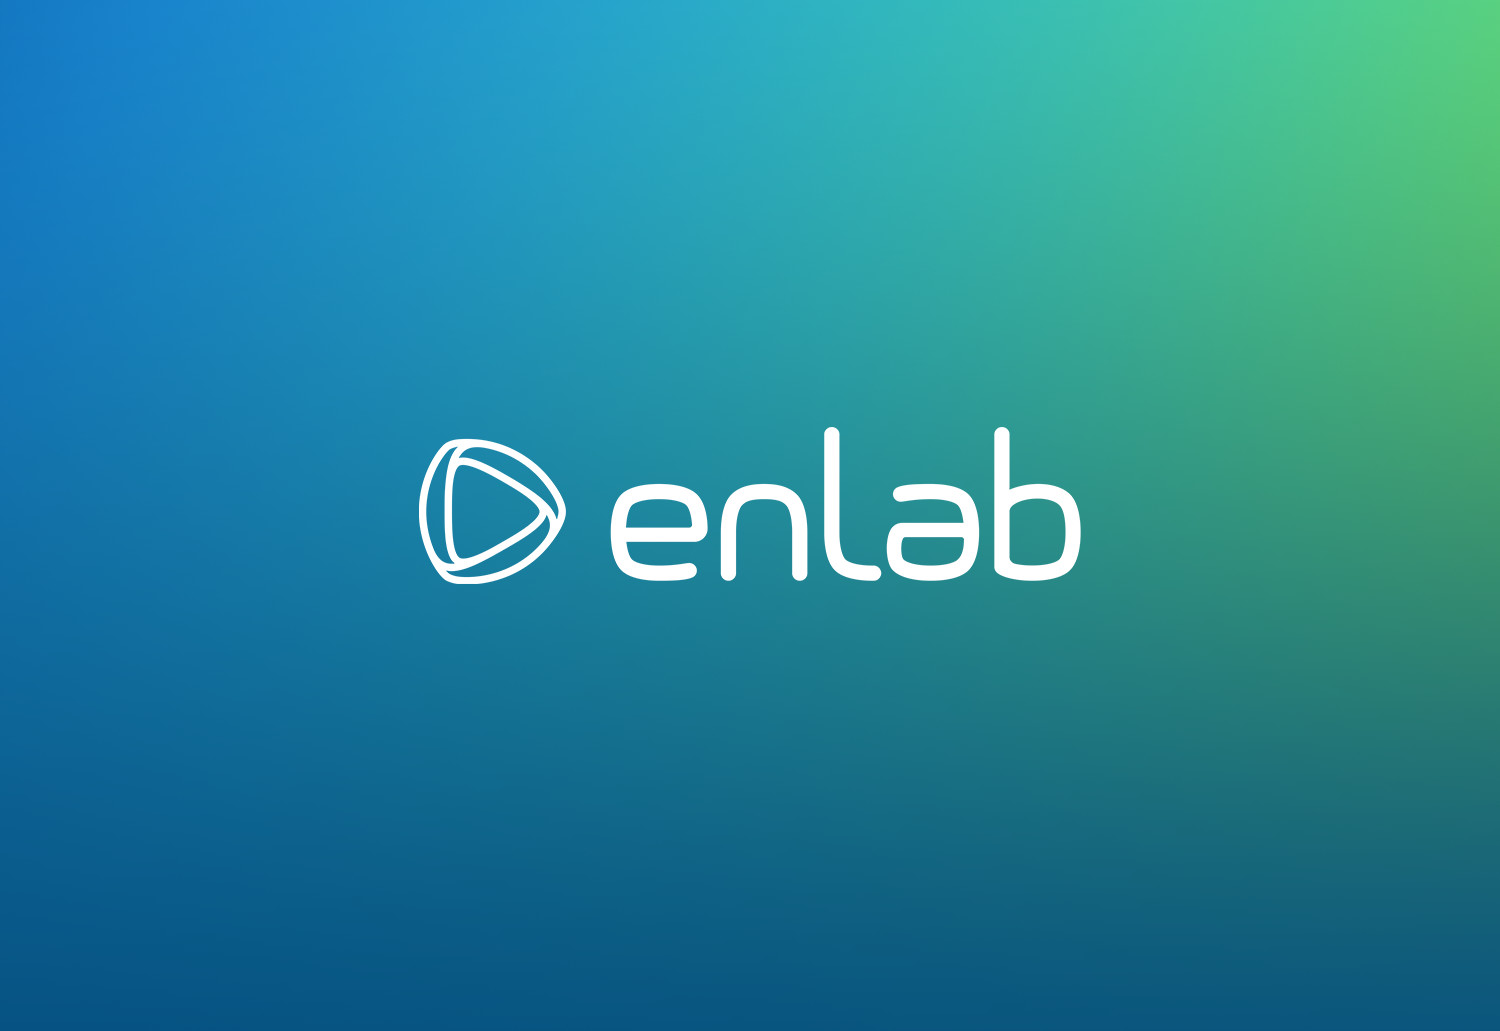 enlab-thumb